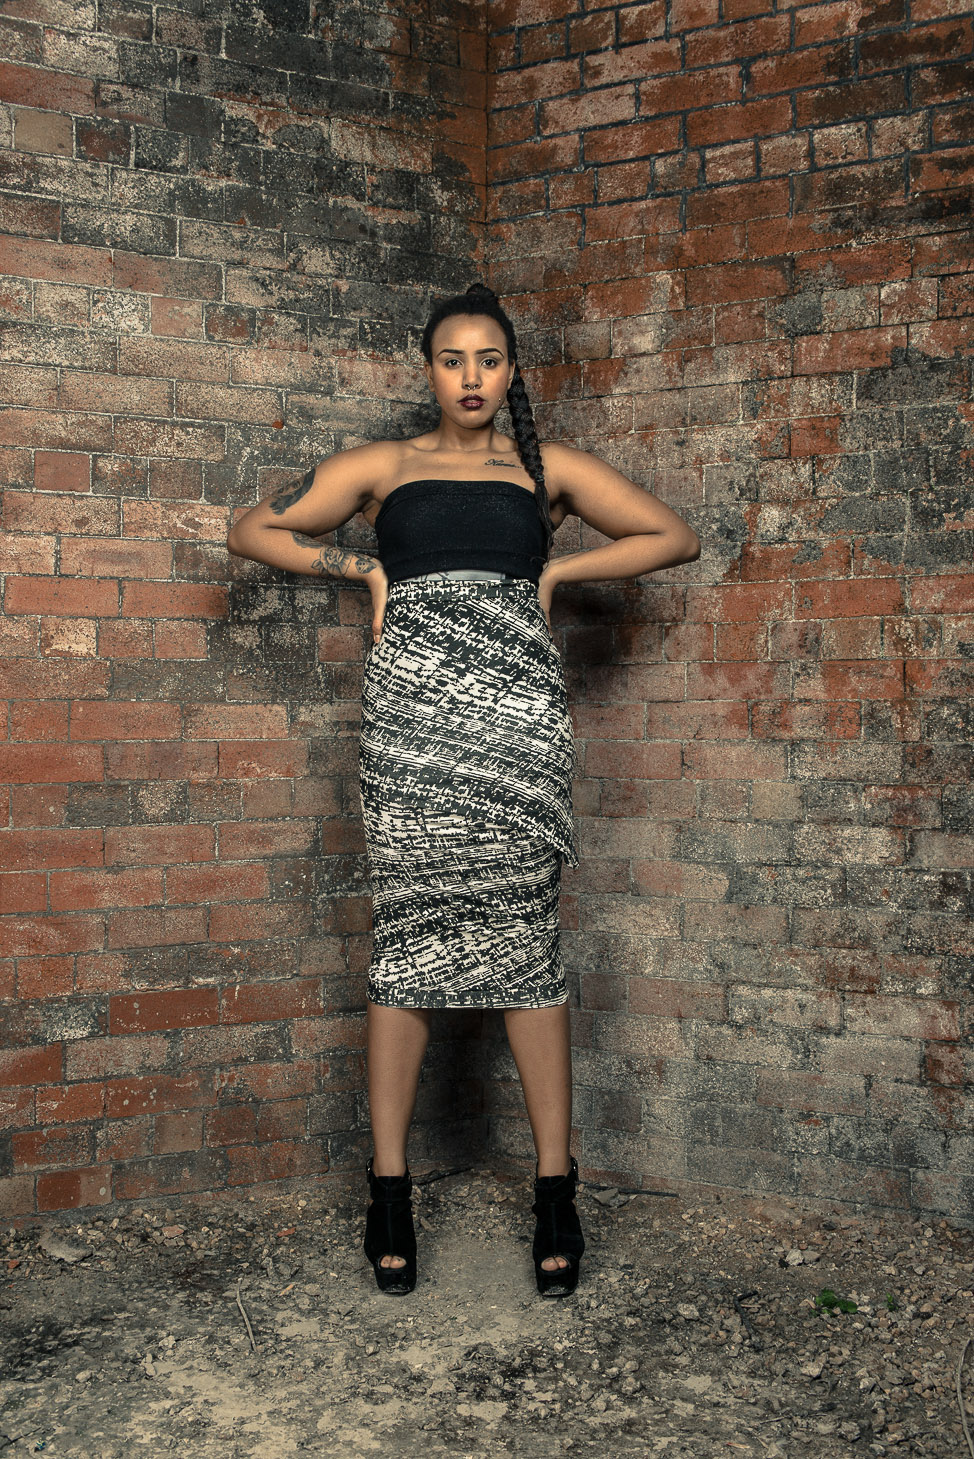 zaramia-ava-zaramiaava-leeds-fashion-designer-ethical-sustainable-tailored-minimalist-skirt-print-bandeau-maxi-versatile-drape-grey-bodysuit-black-obi-belt-wrap-cowl-styling-womenswear-models-35